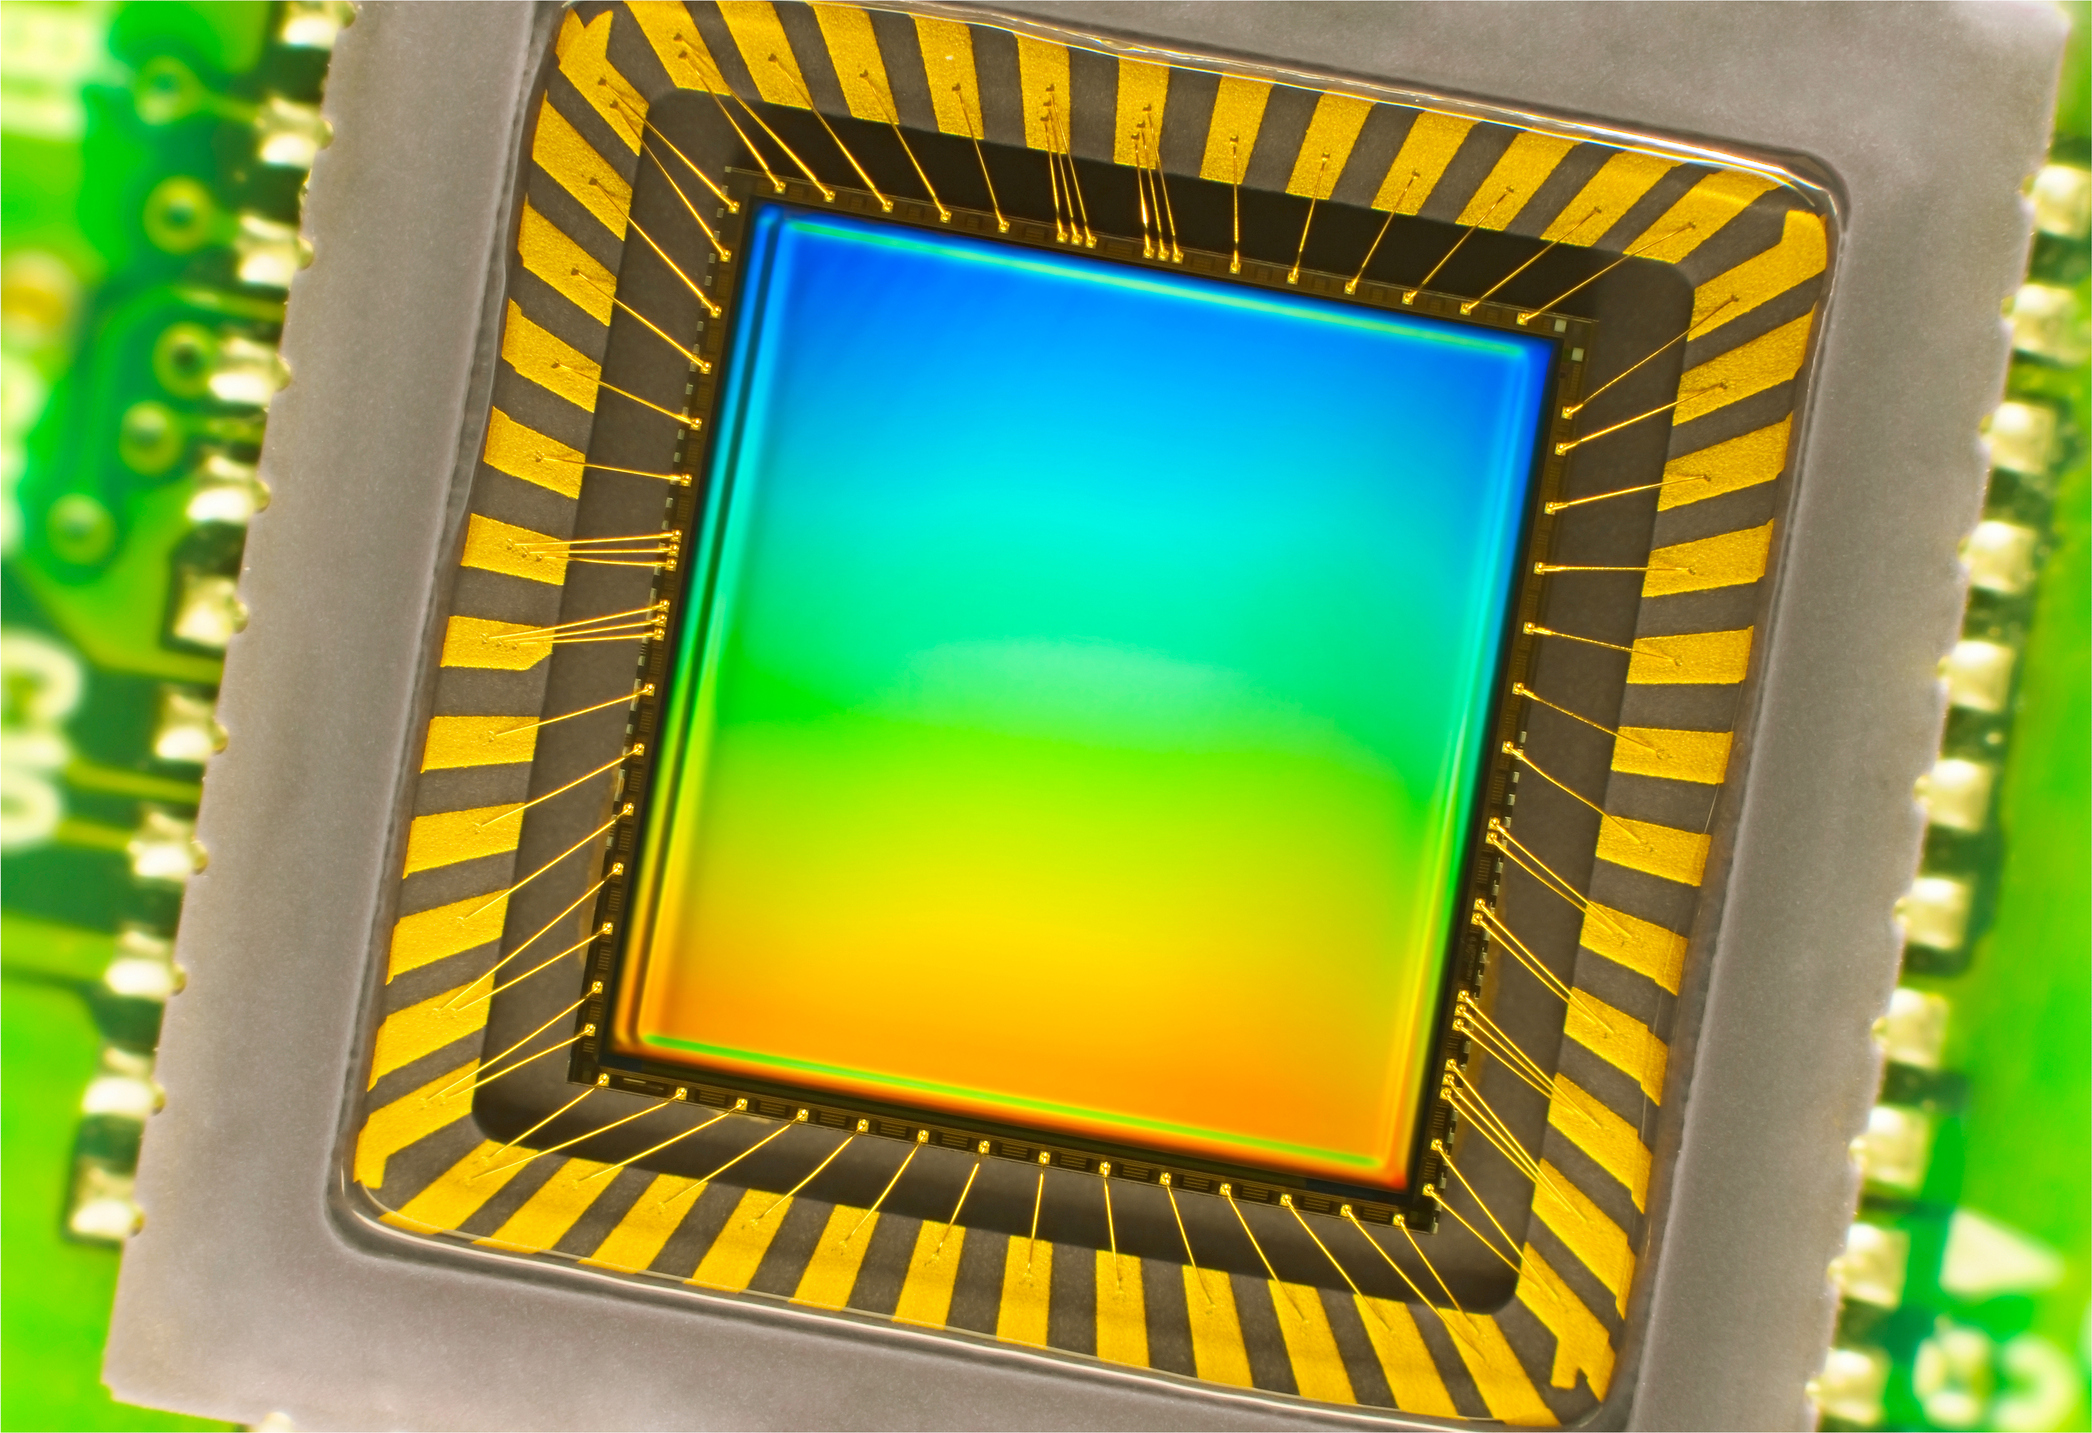 An image sensor one might find in a digital camera.